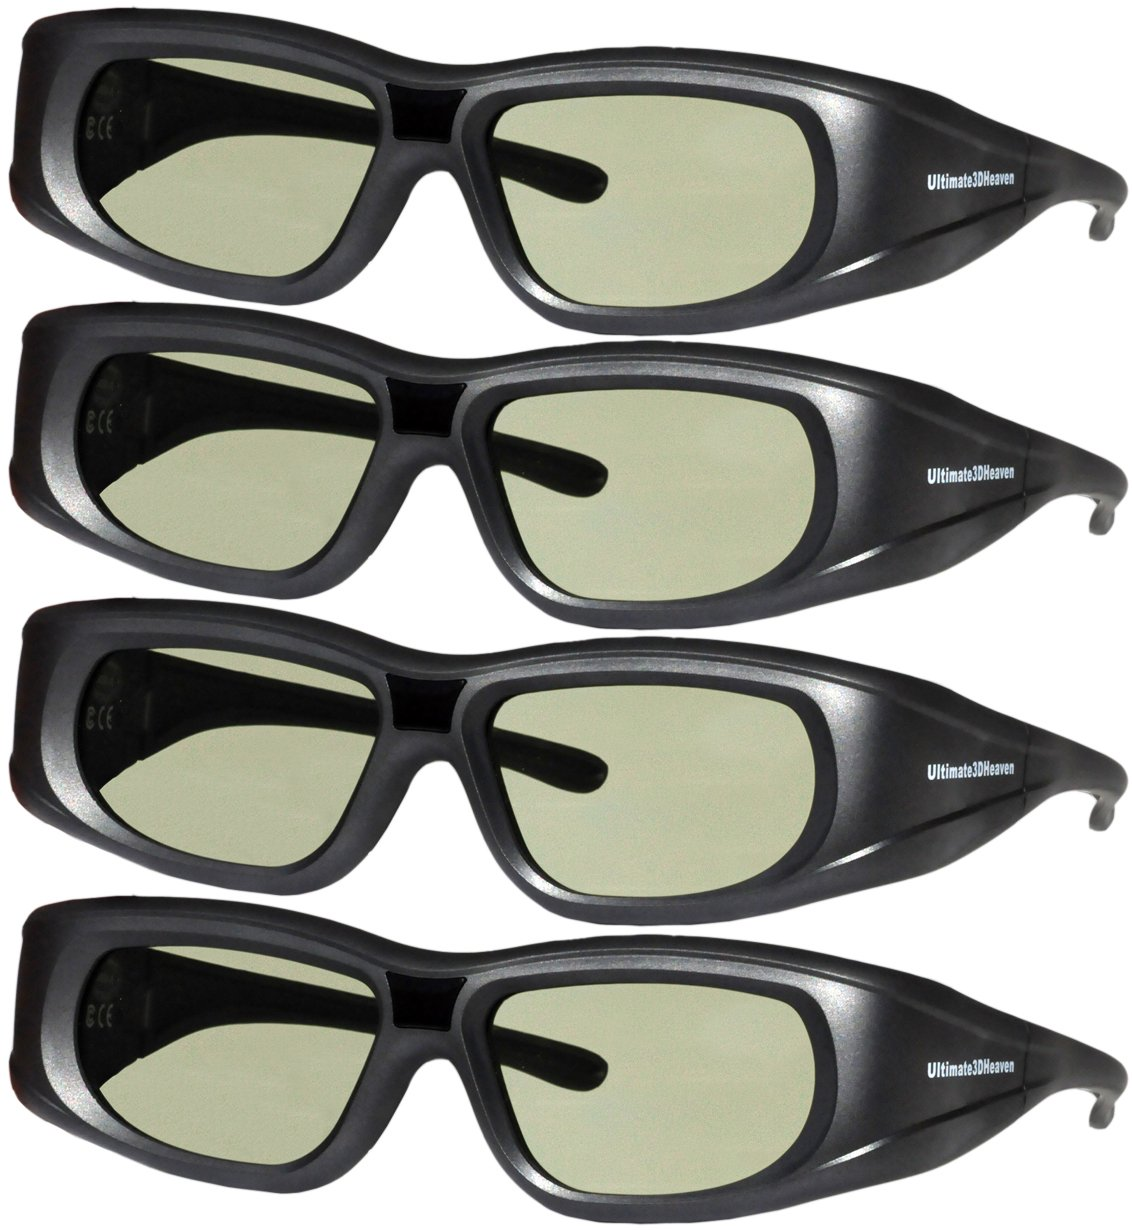 DLP LINK 144 Hz Ultra-Clear HD 4 PACK 3D Active Rechargeable Shutter Glasses for All 3D DLP Projectors - BenQ, Optoma, Dell, Mitsubishi, Samsung, Acer, Vivitek, NEC, Sharp, ViewSonic & Endless Others! 3DHeaven 4330079466